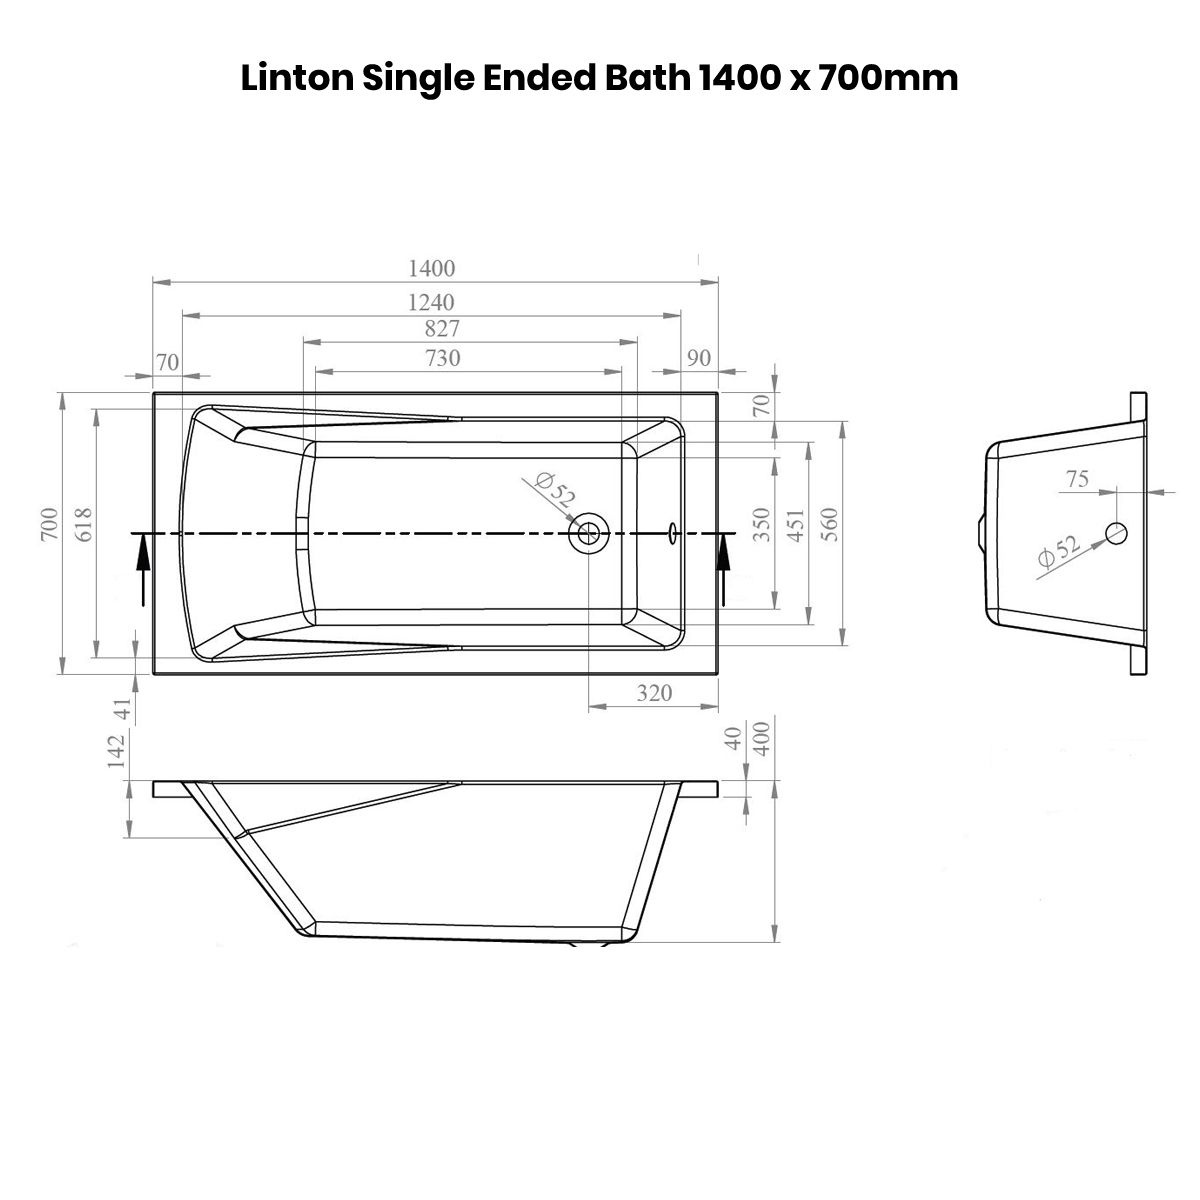 Premier Linton Single Ended Bath 1400 x 700mm Dimensions